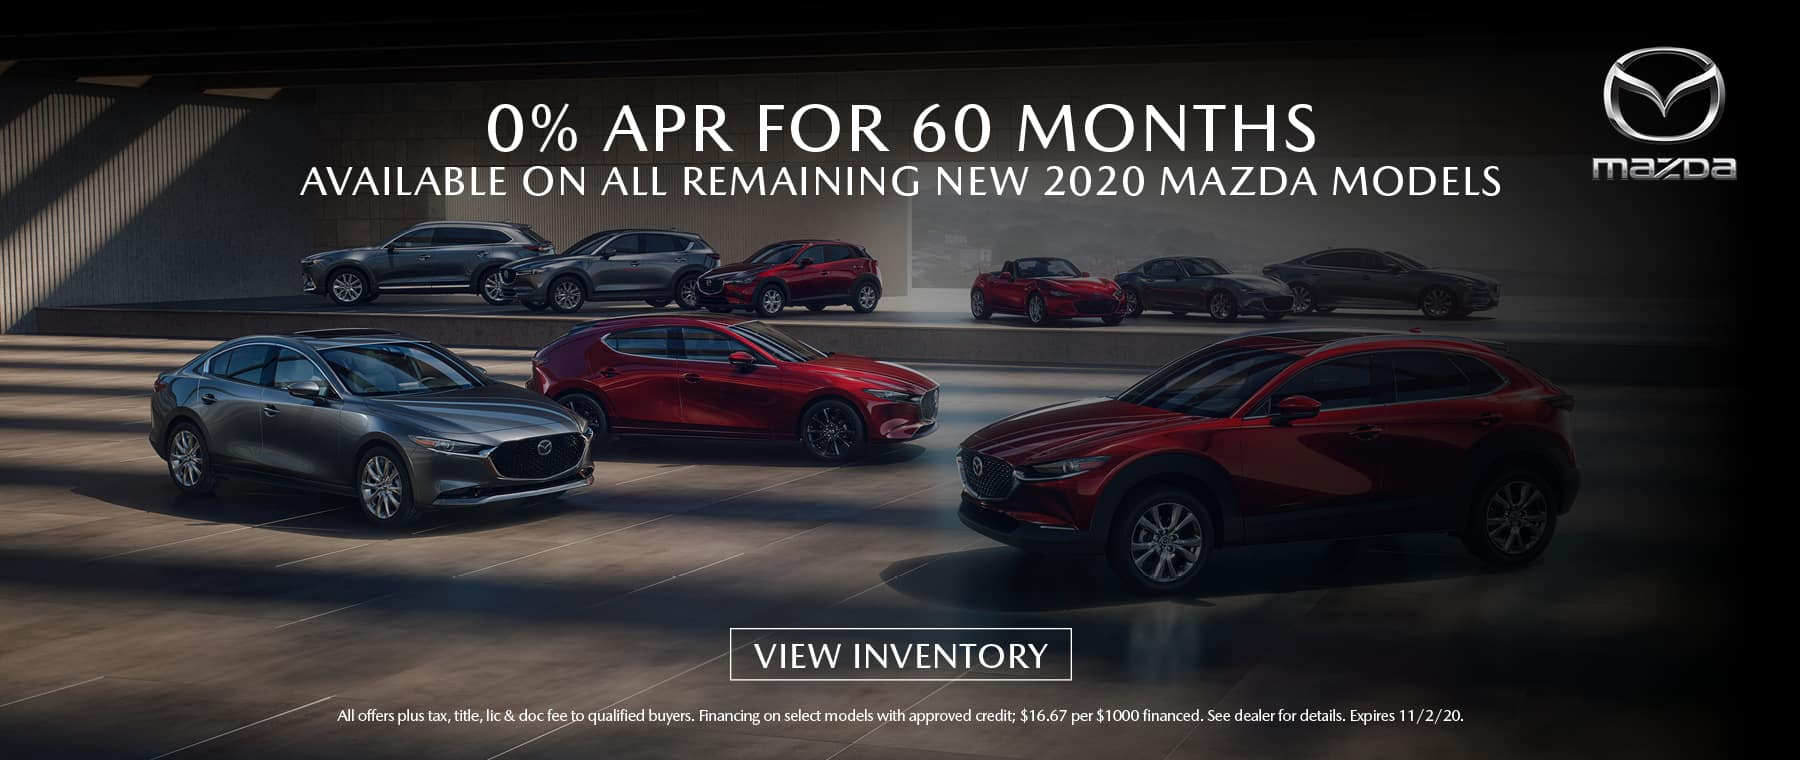 0% APR For 60 Months